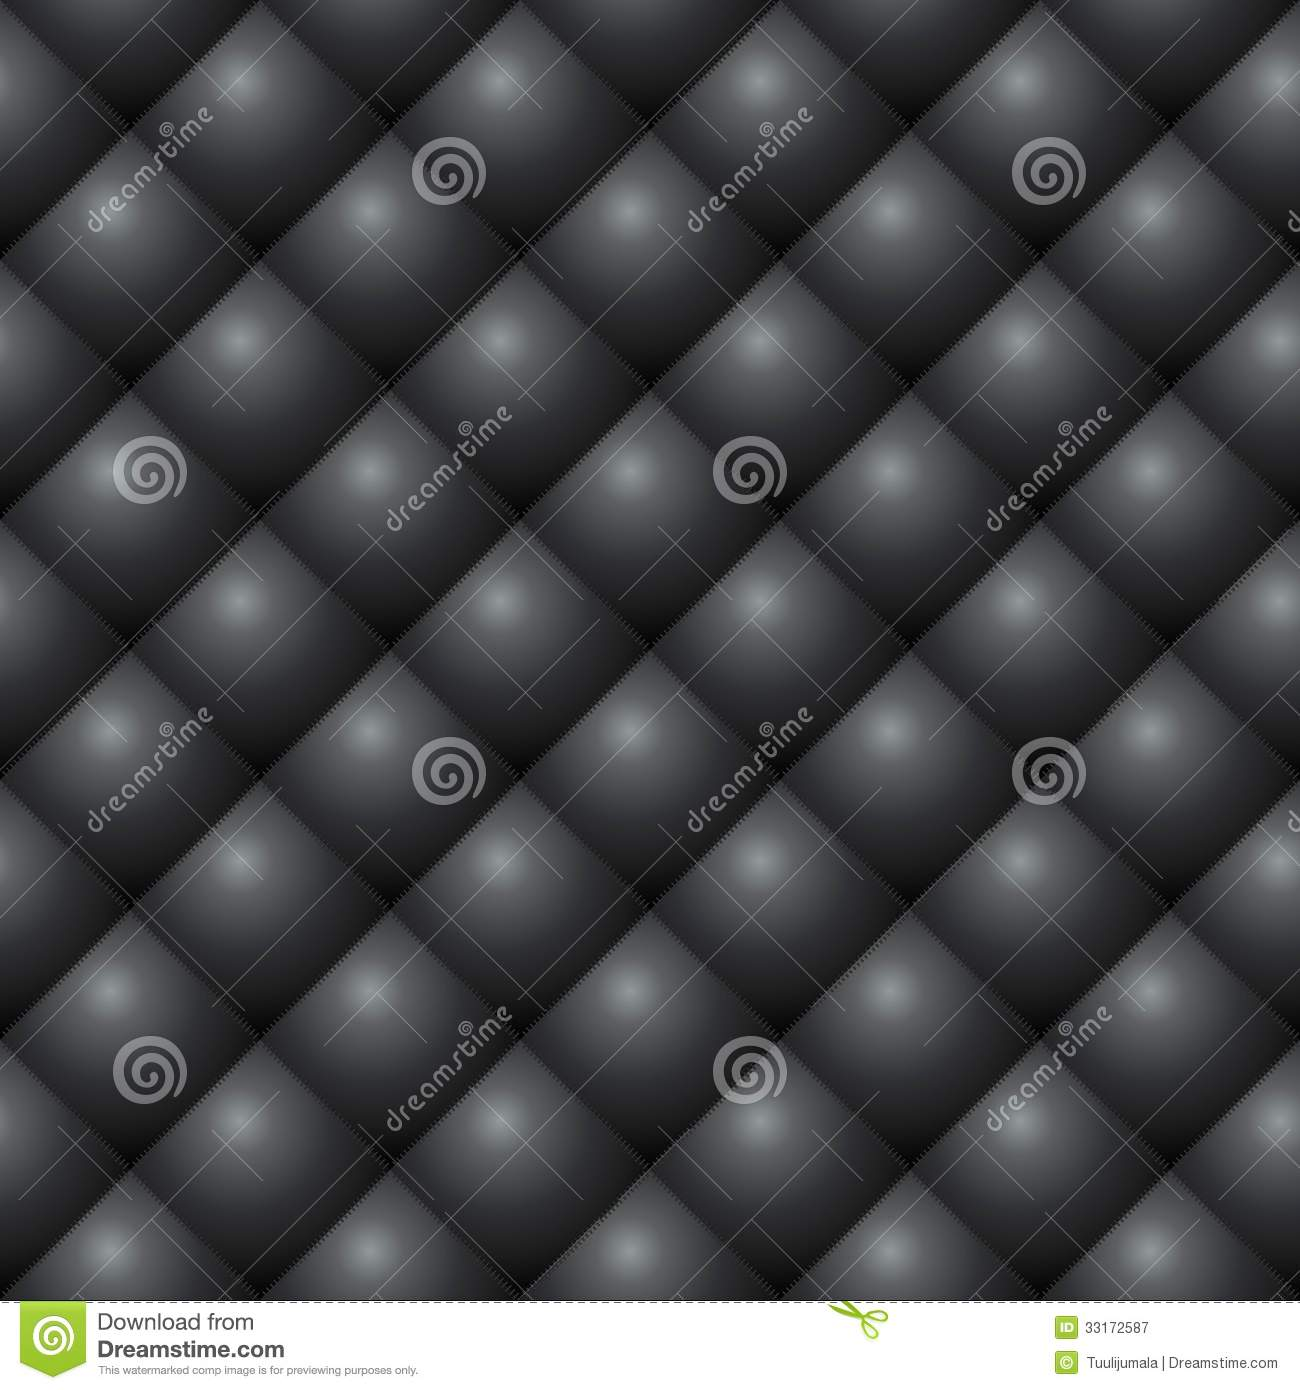 Diamond Stitched Leather Texture Royalty Free Stock